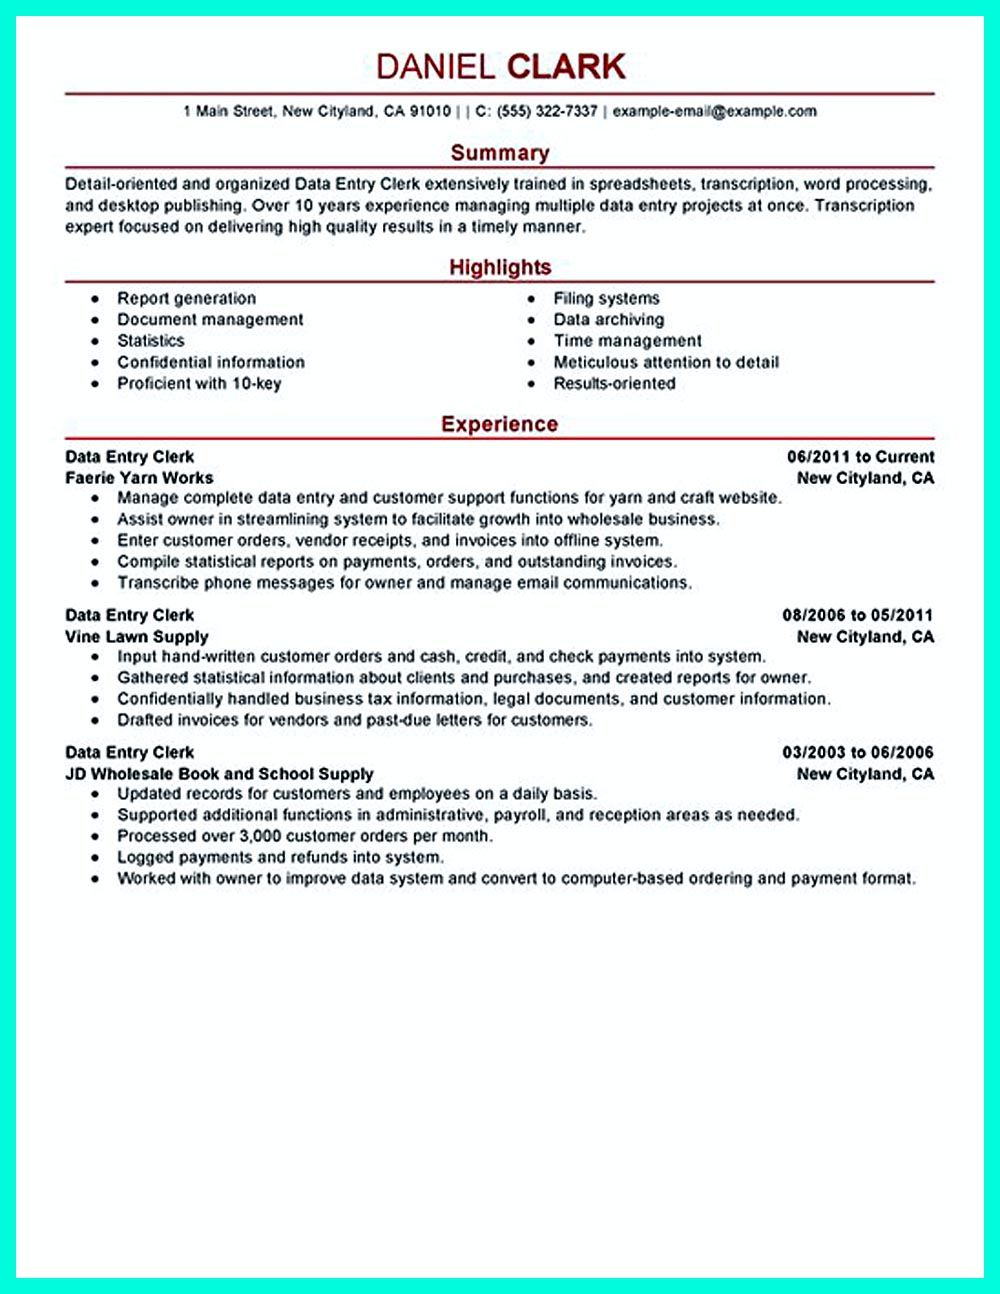 Your Data Entry Resume Is The Essential Marketing Key To Get The Job You  Seek.  Data Entry Resume Example